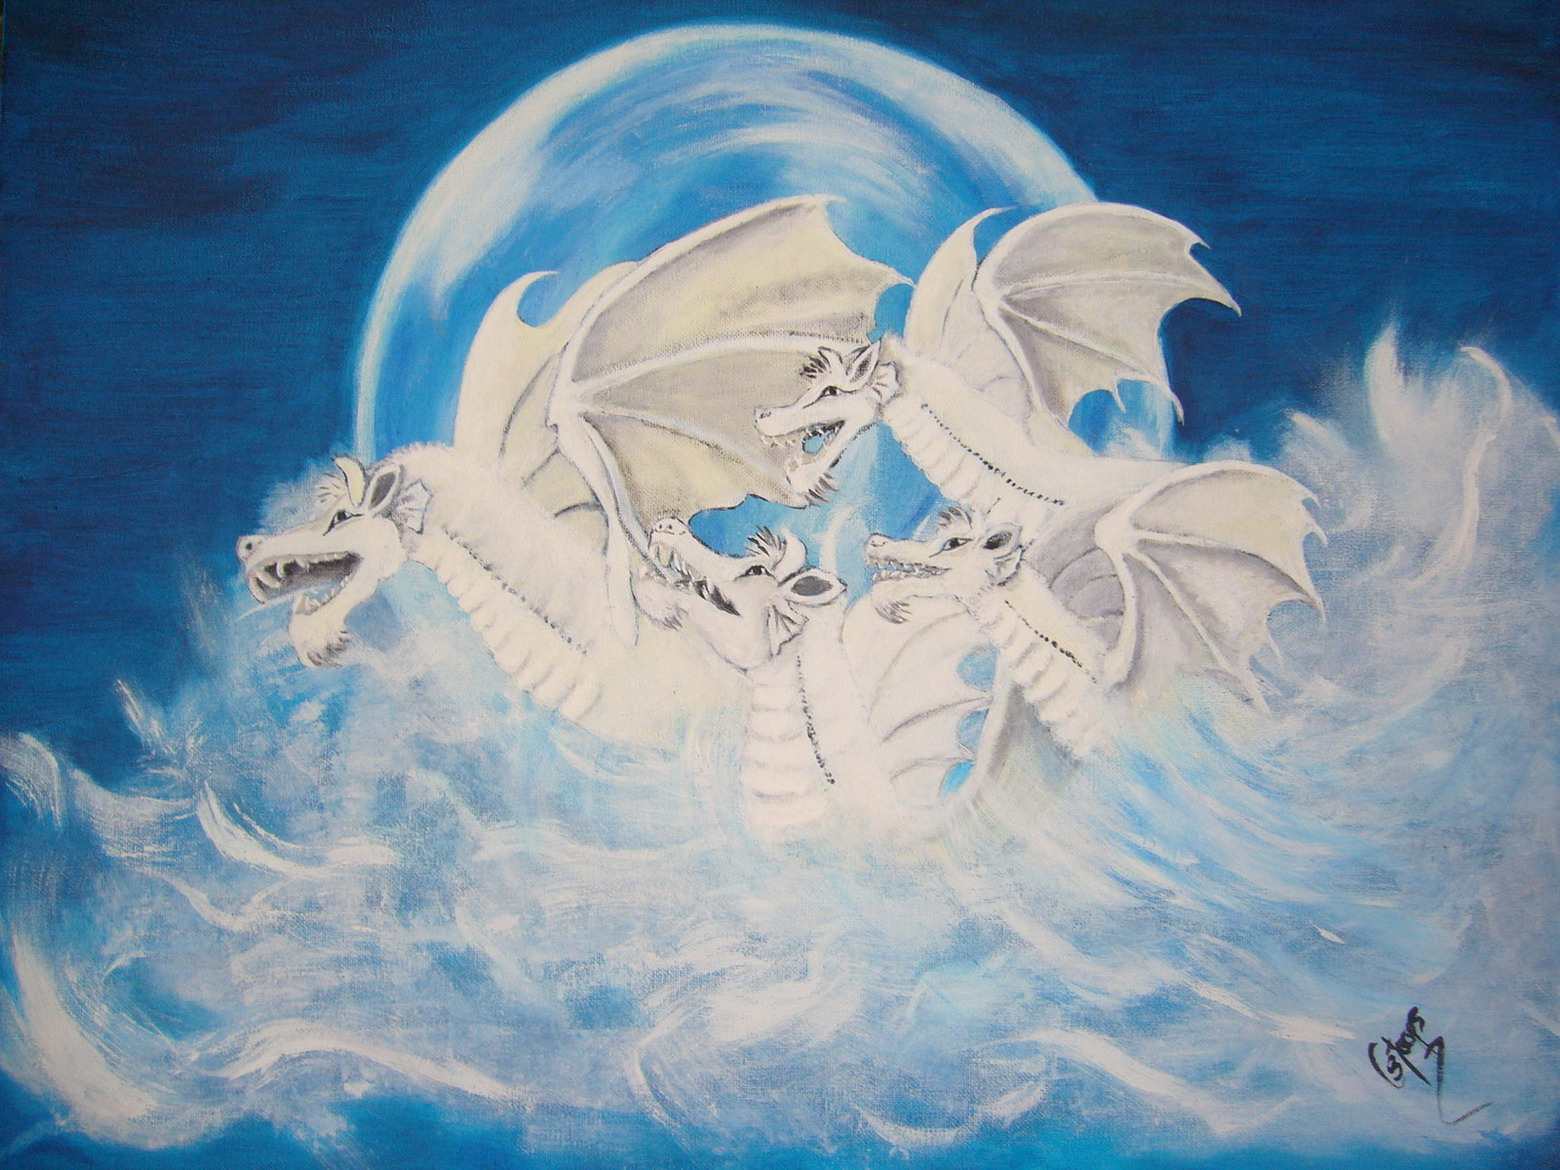 Snow Dragons (Oil Painting)